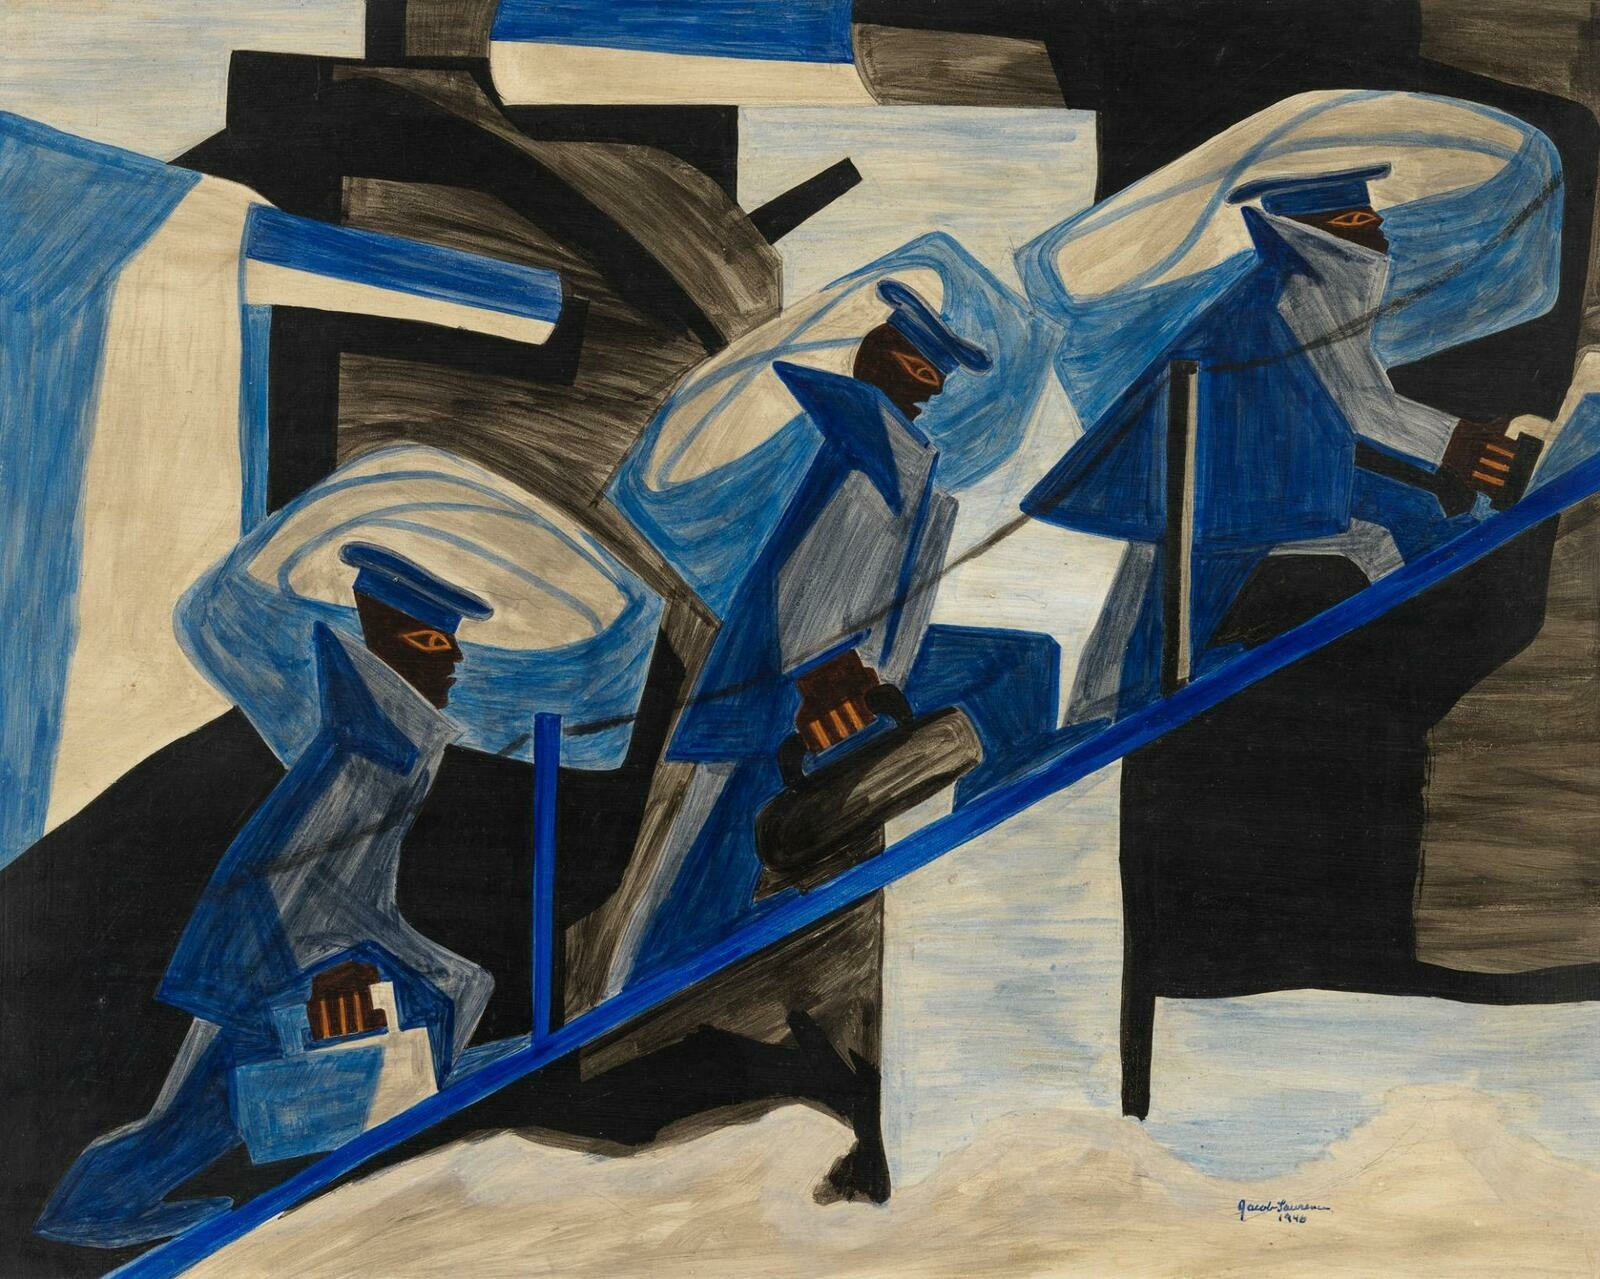 Three Black figures in geometric blue and grey suits and hats carry large sacks over their shoulders and march in unison up a roped-off incline.